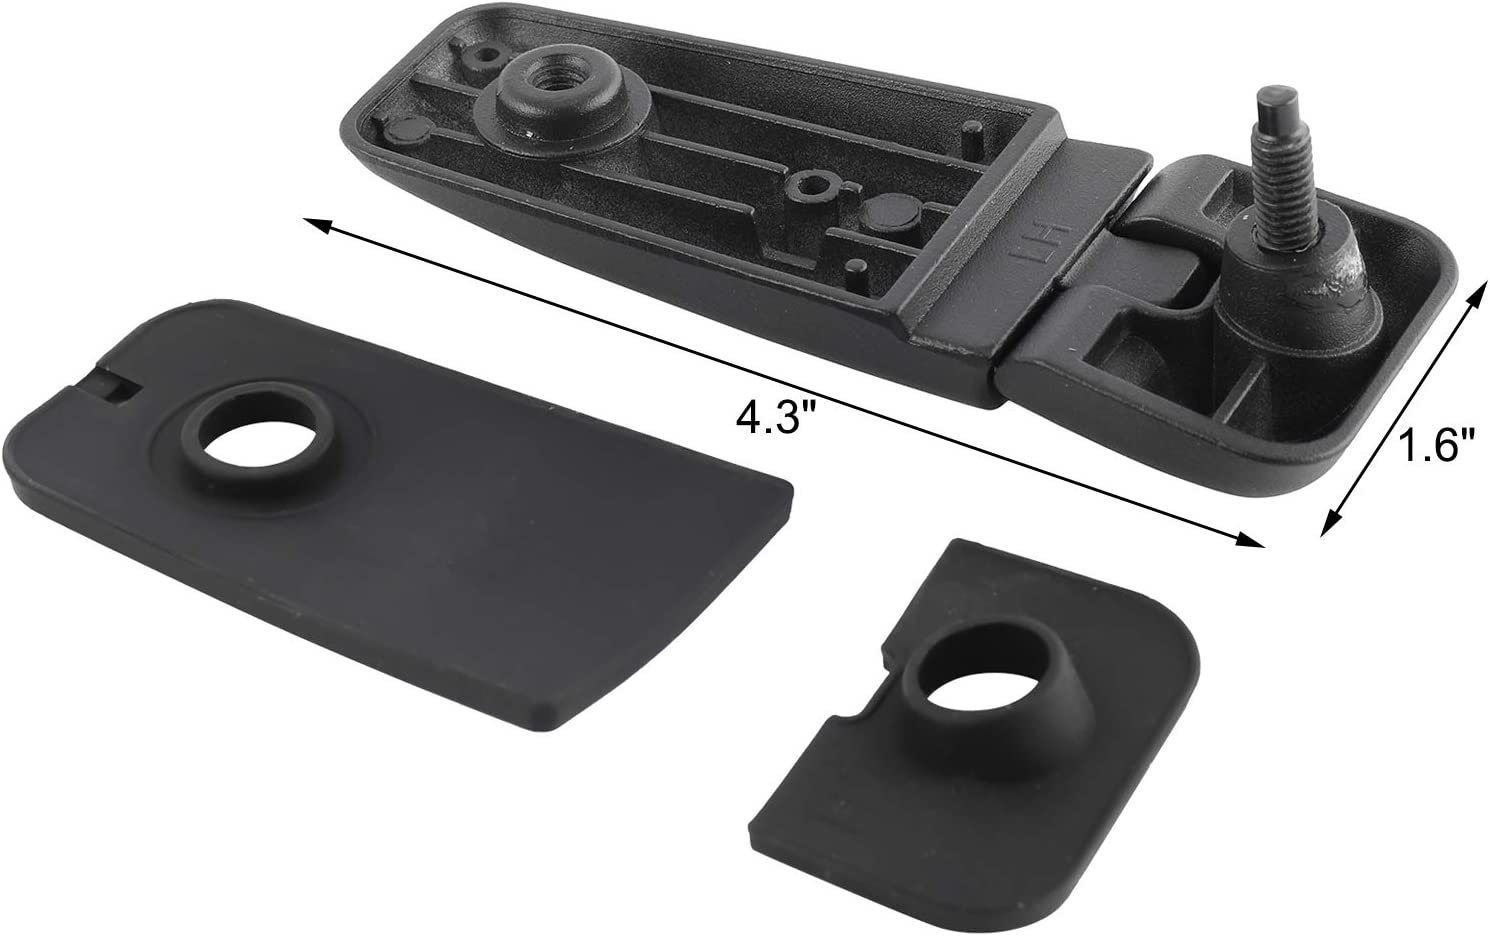 NovelBee Pair of Rear Tailgate Window Hinges Fit for 2005-2012 Nissan Pathfinder 90320-ZP40A 90321-ZP40A